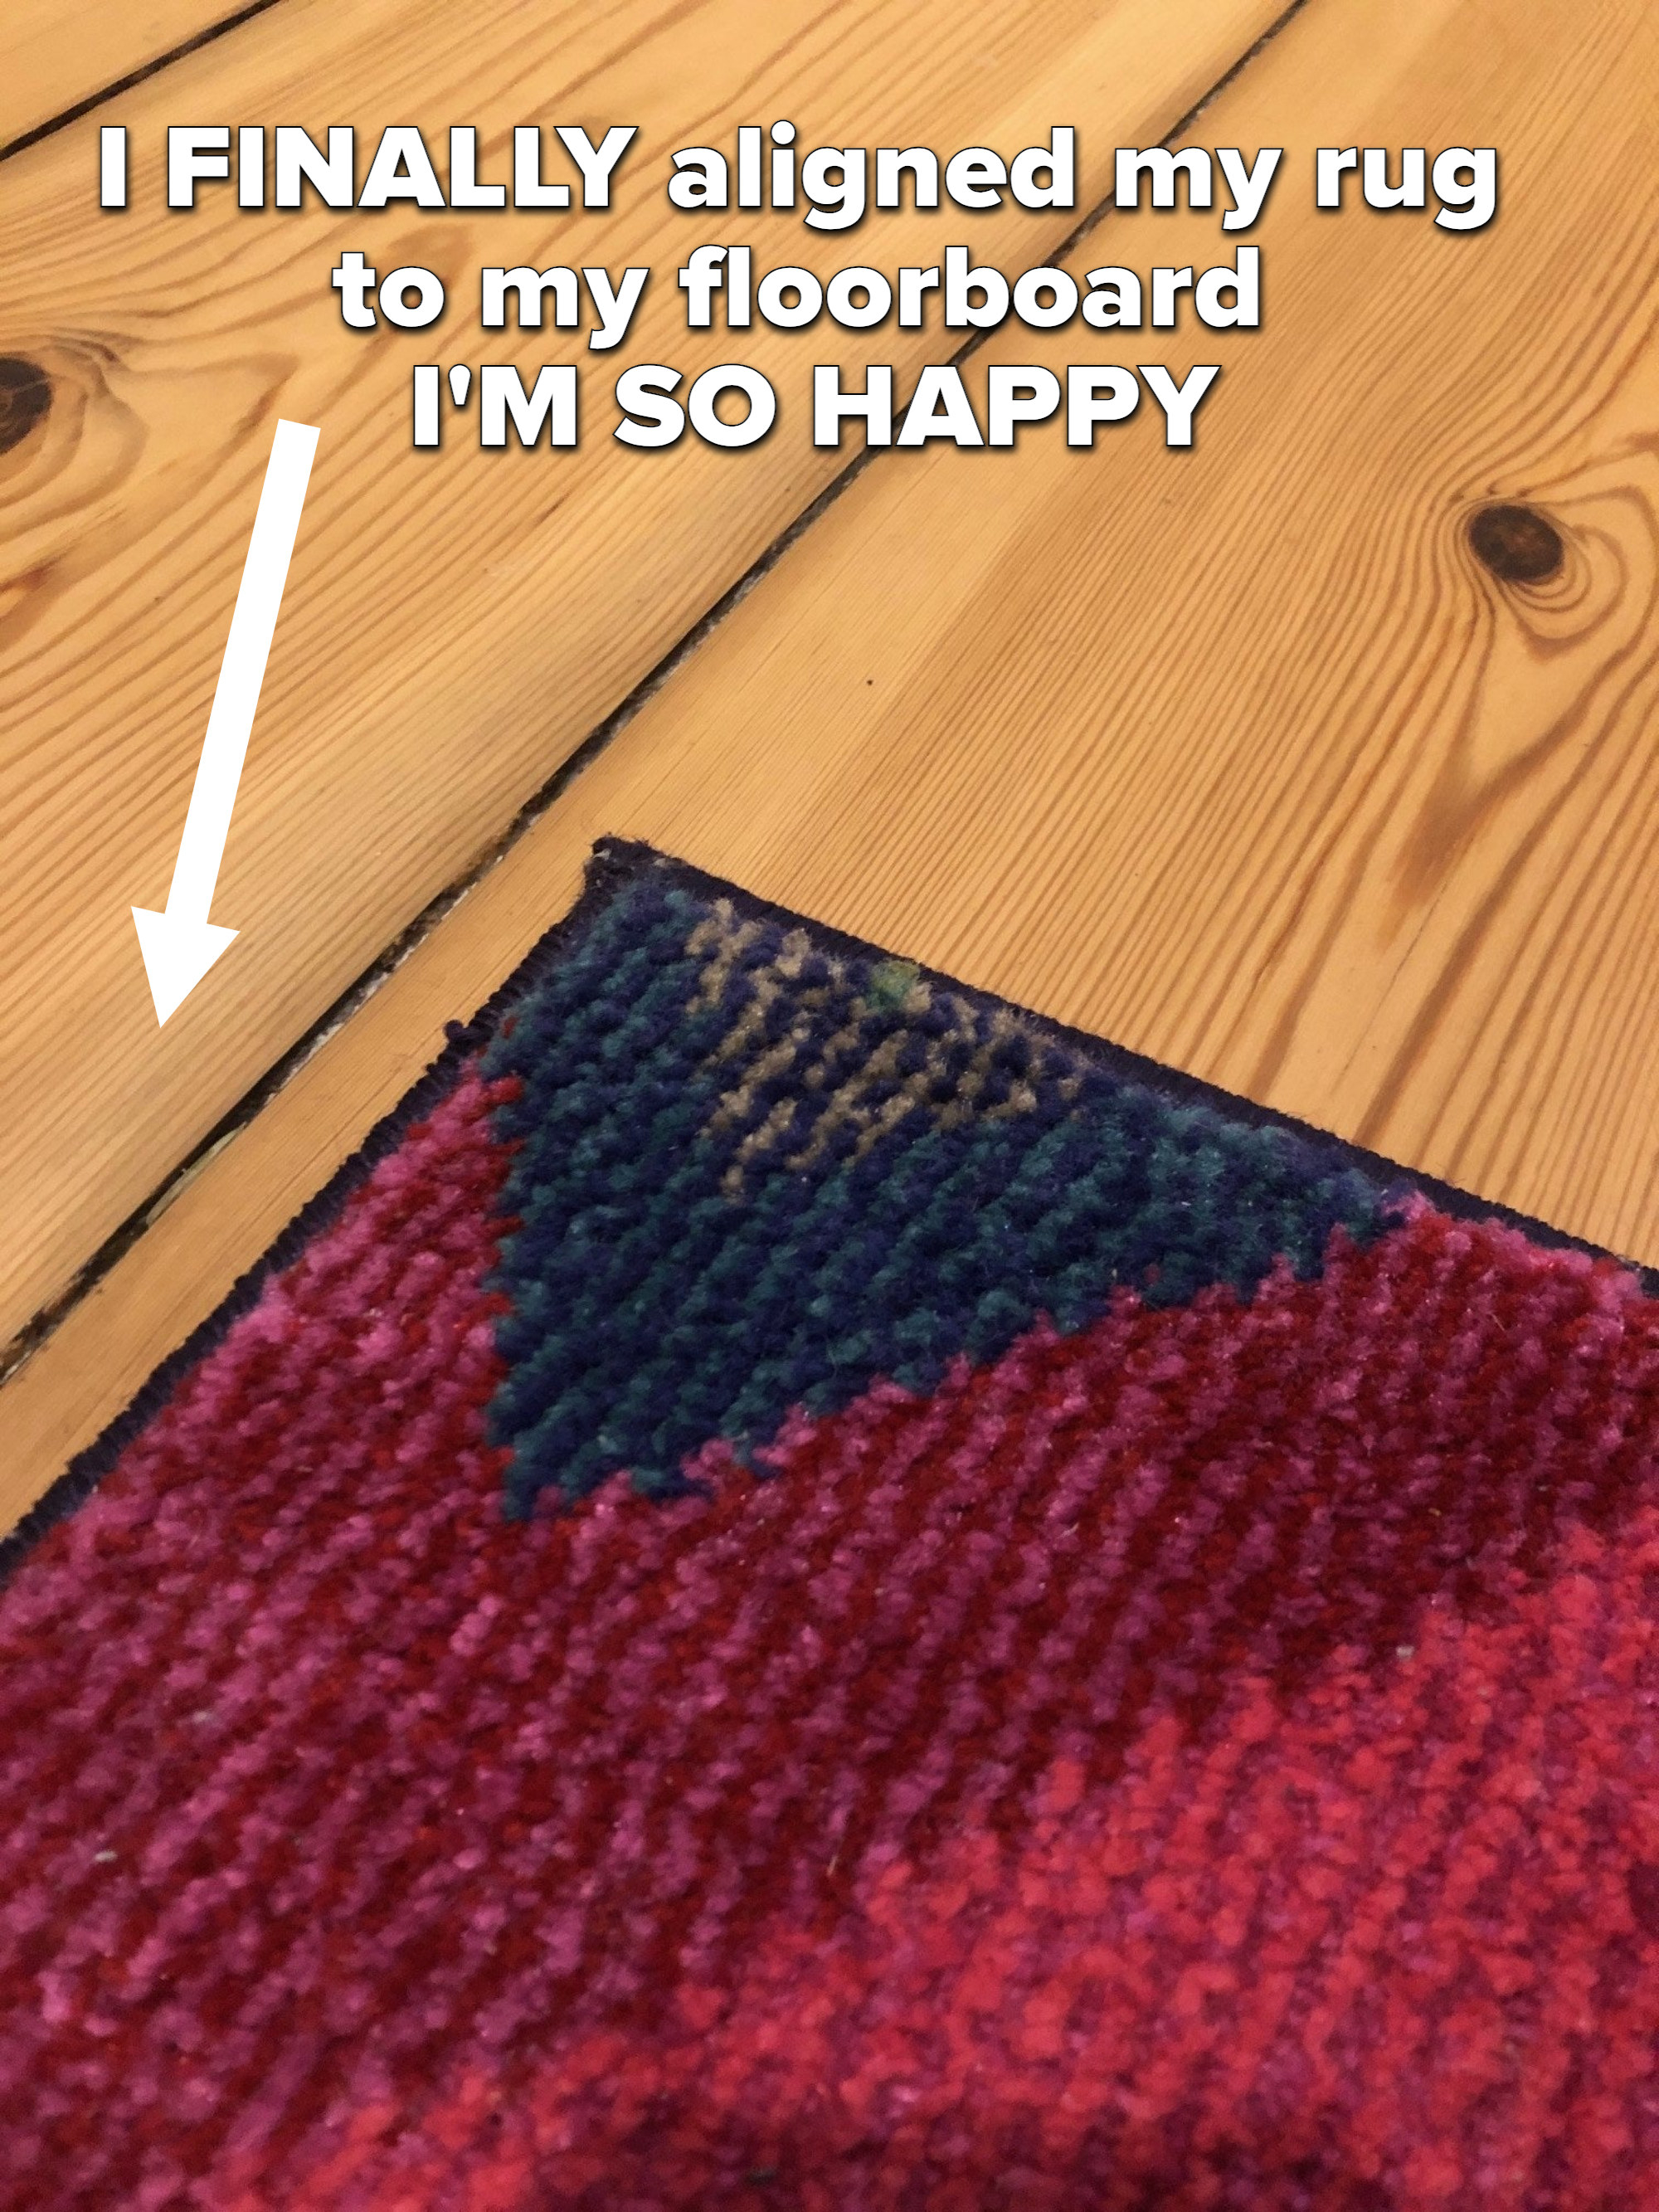 The writer's rug perfectly aligned to the floorboard